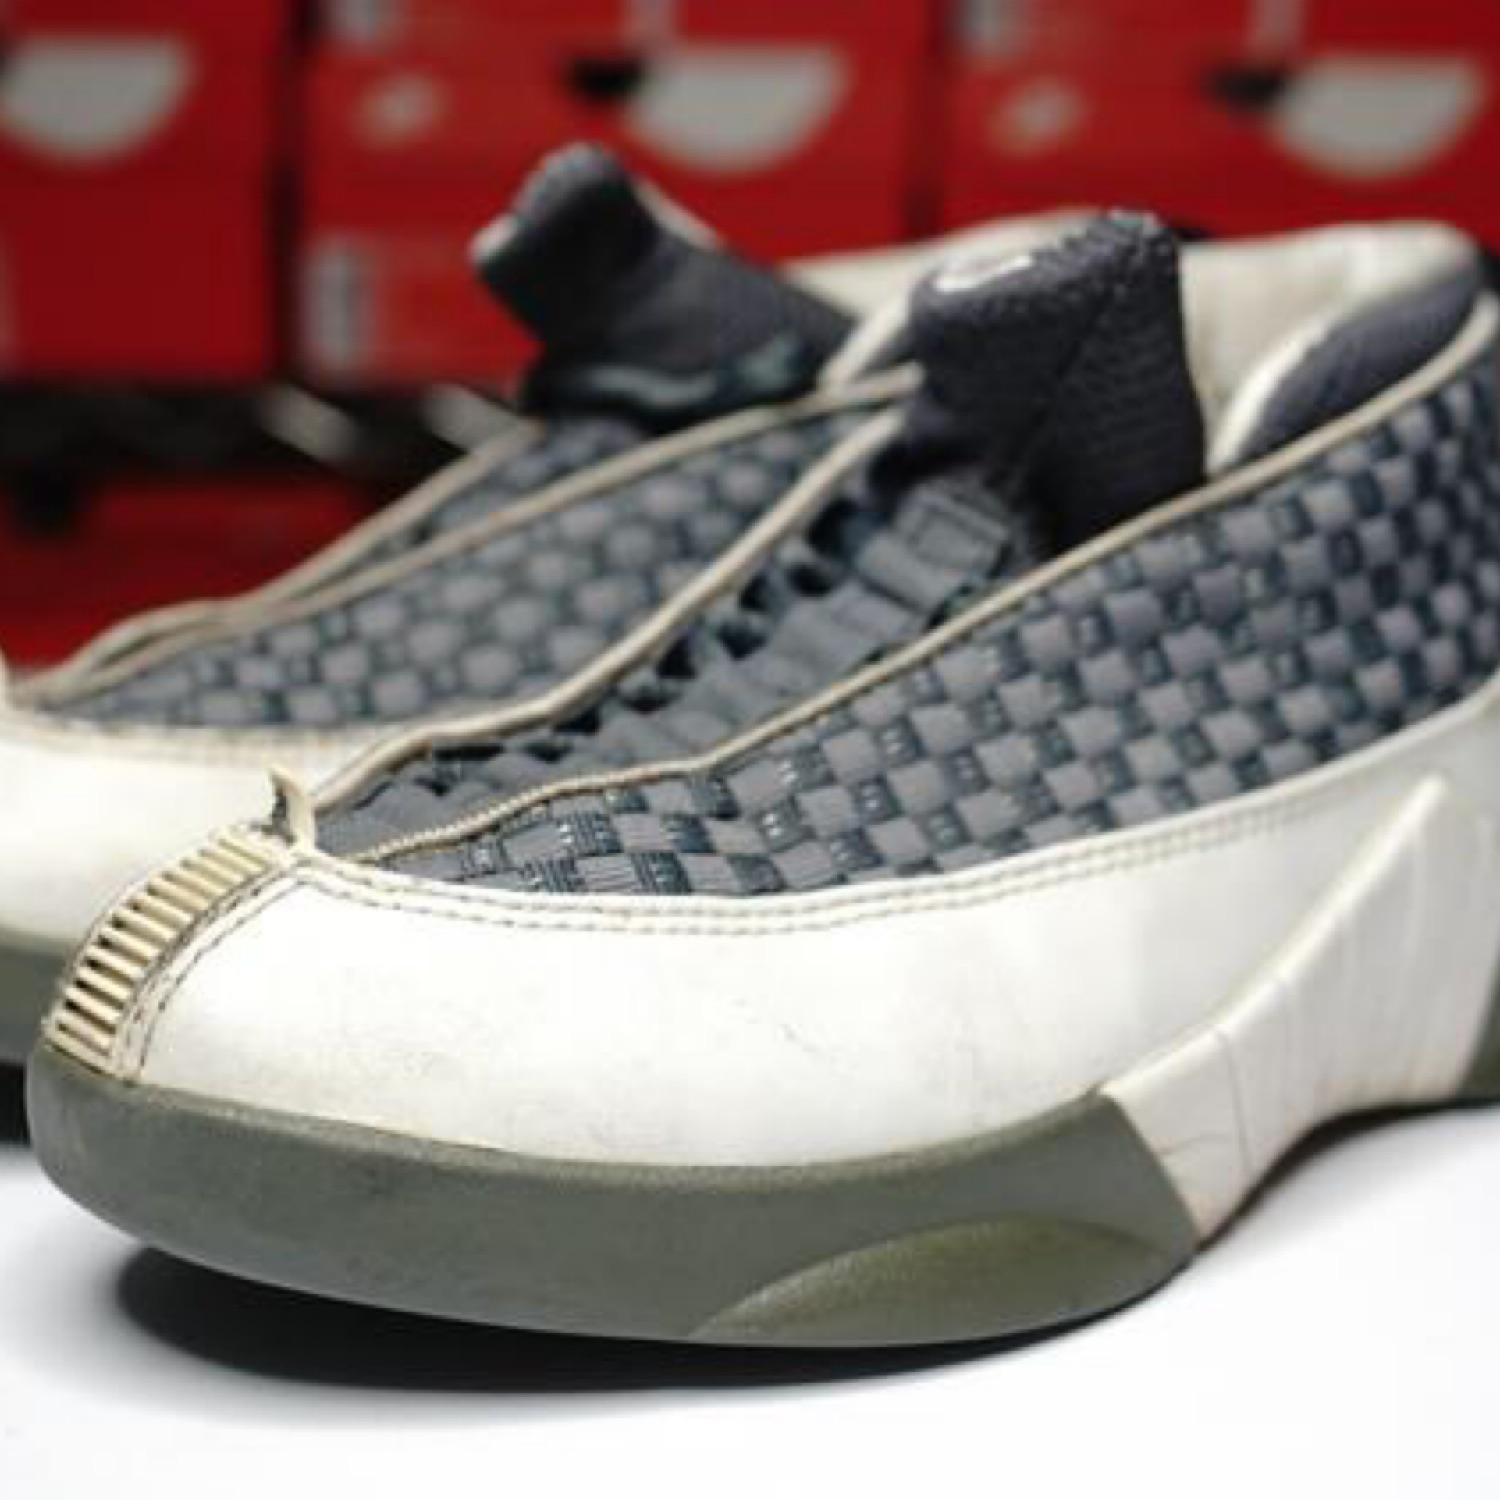 hot sale online 5df26 02d34 Nike Air Jordan 15 Xv (Gs) Size 3.5Y